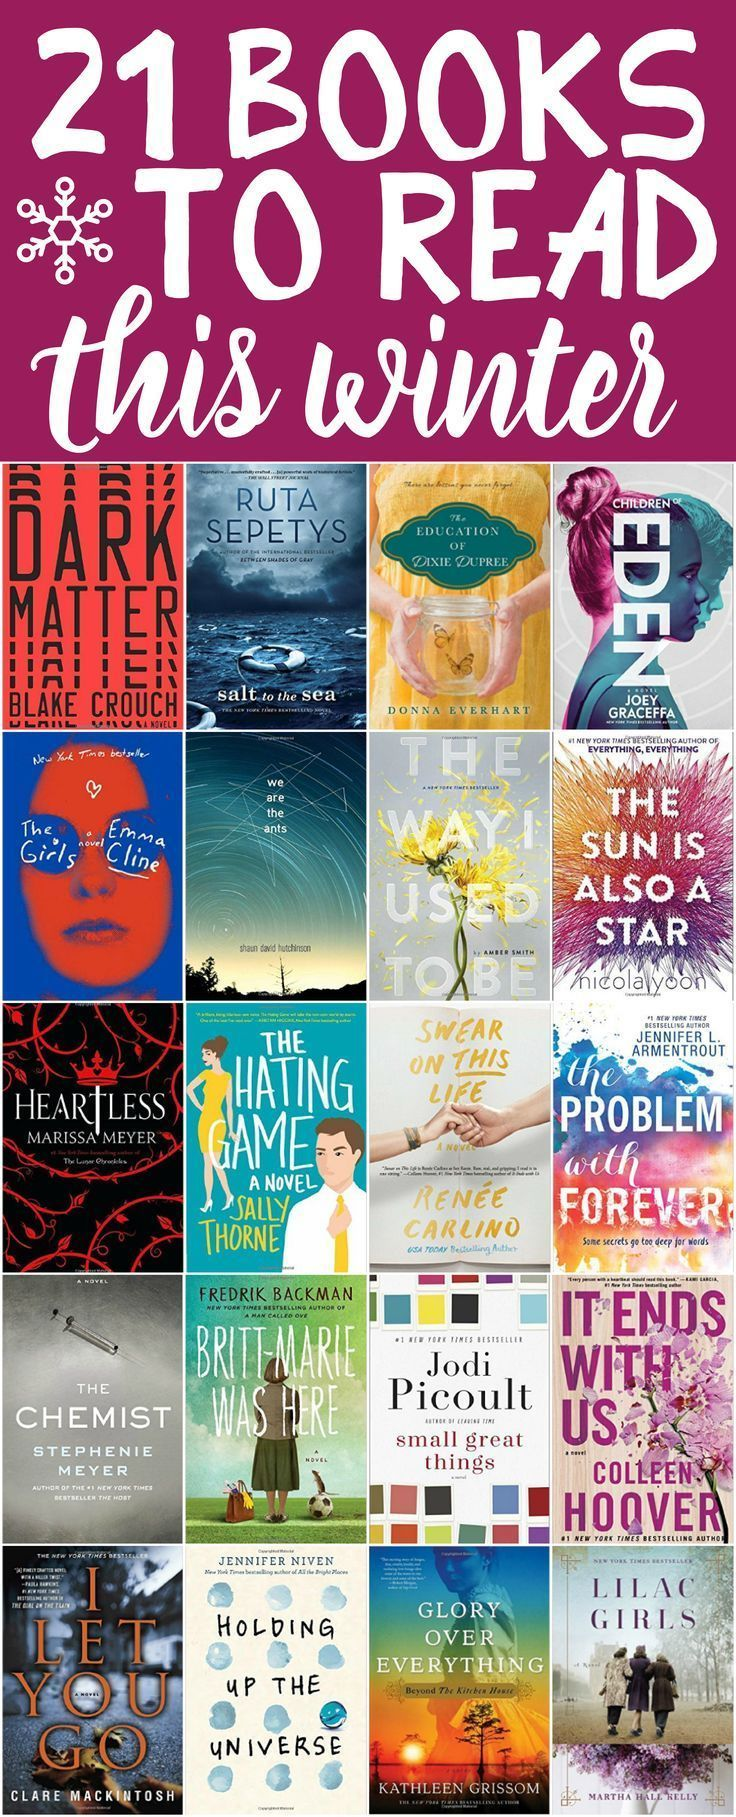 21 Books to Read This Winter